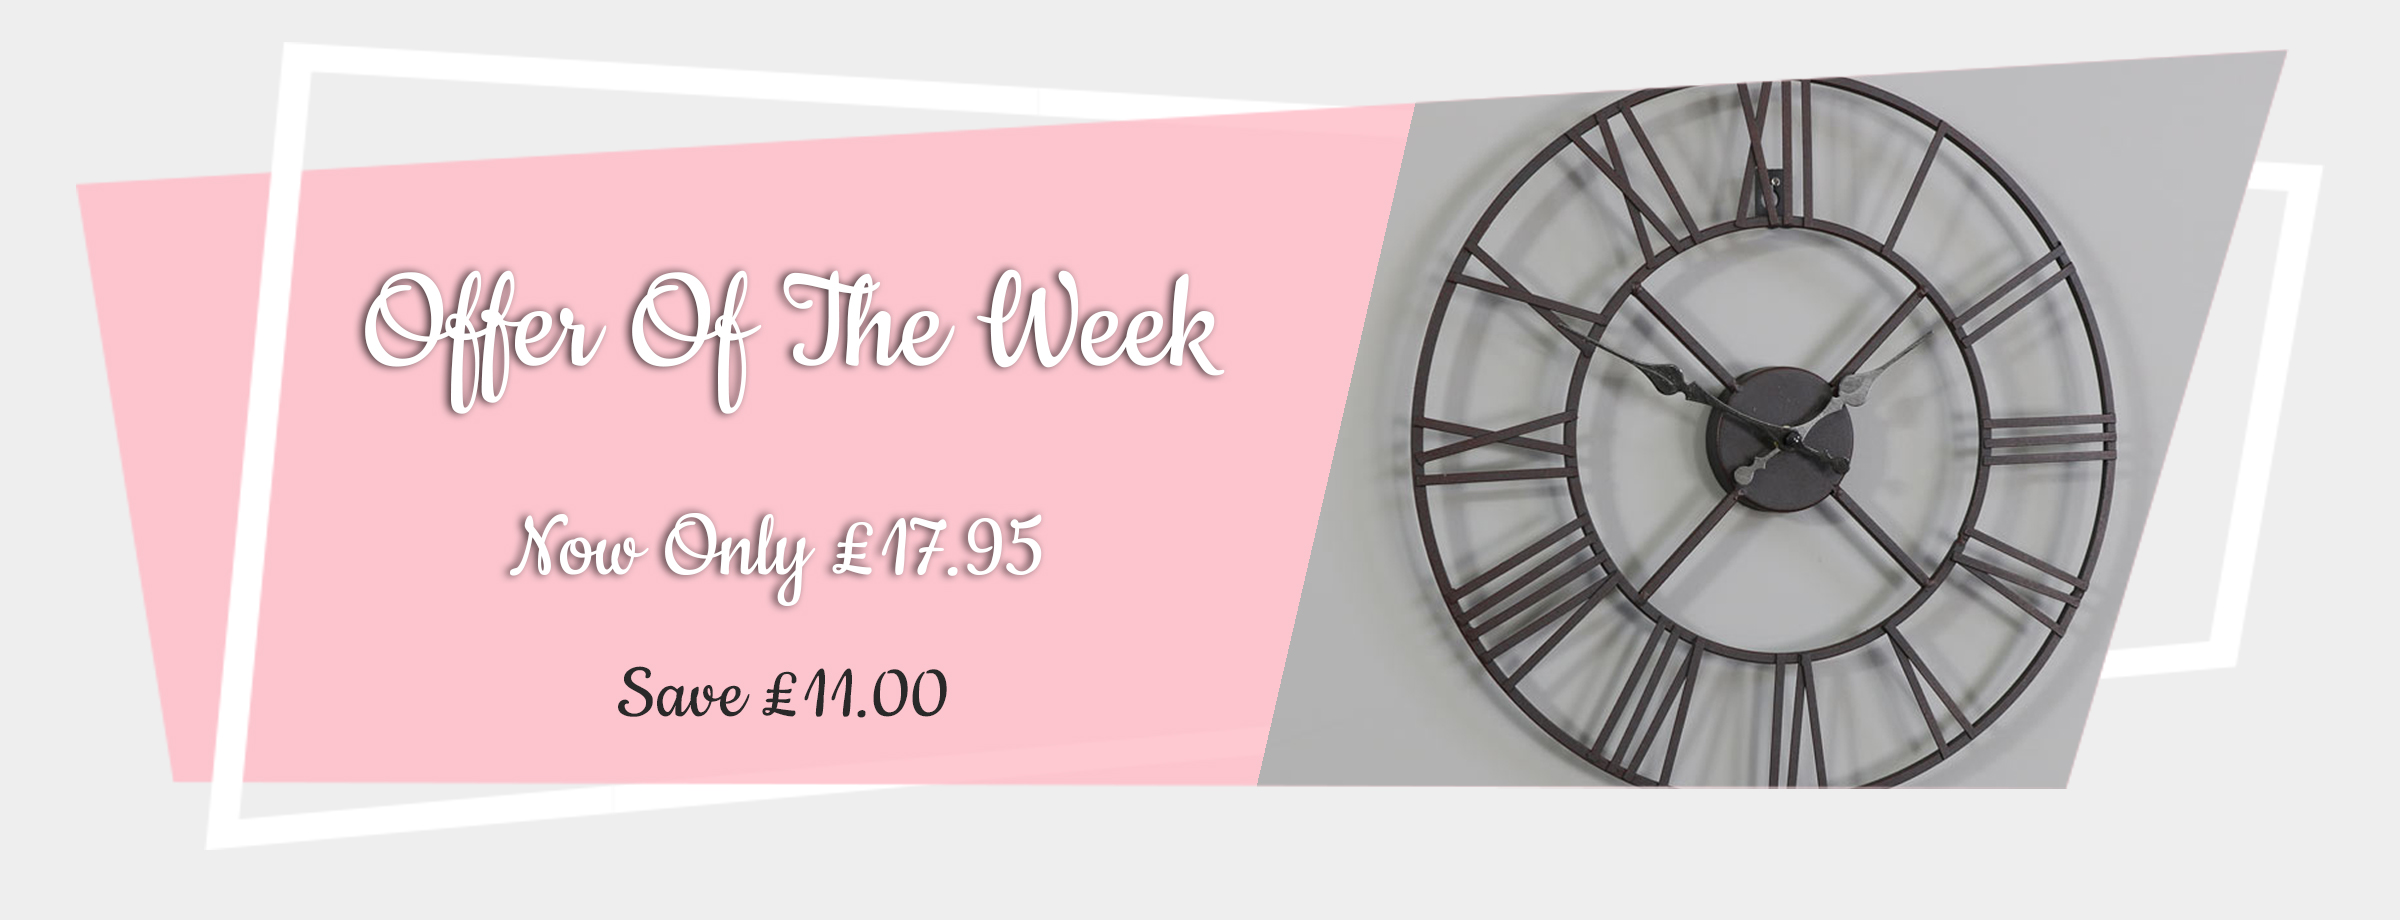 Offer of the Week - Rustic Black Skeleton Wall Clock with Roman Numerals 40cm x 40cm